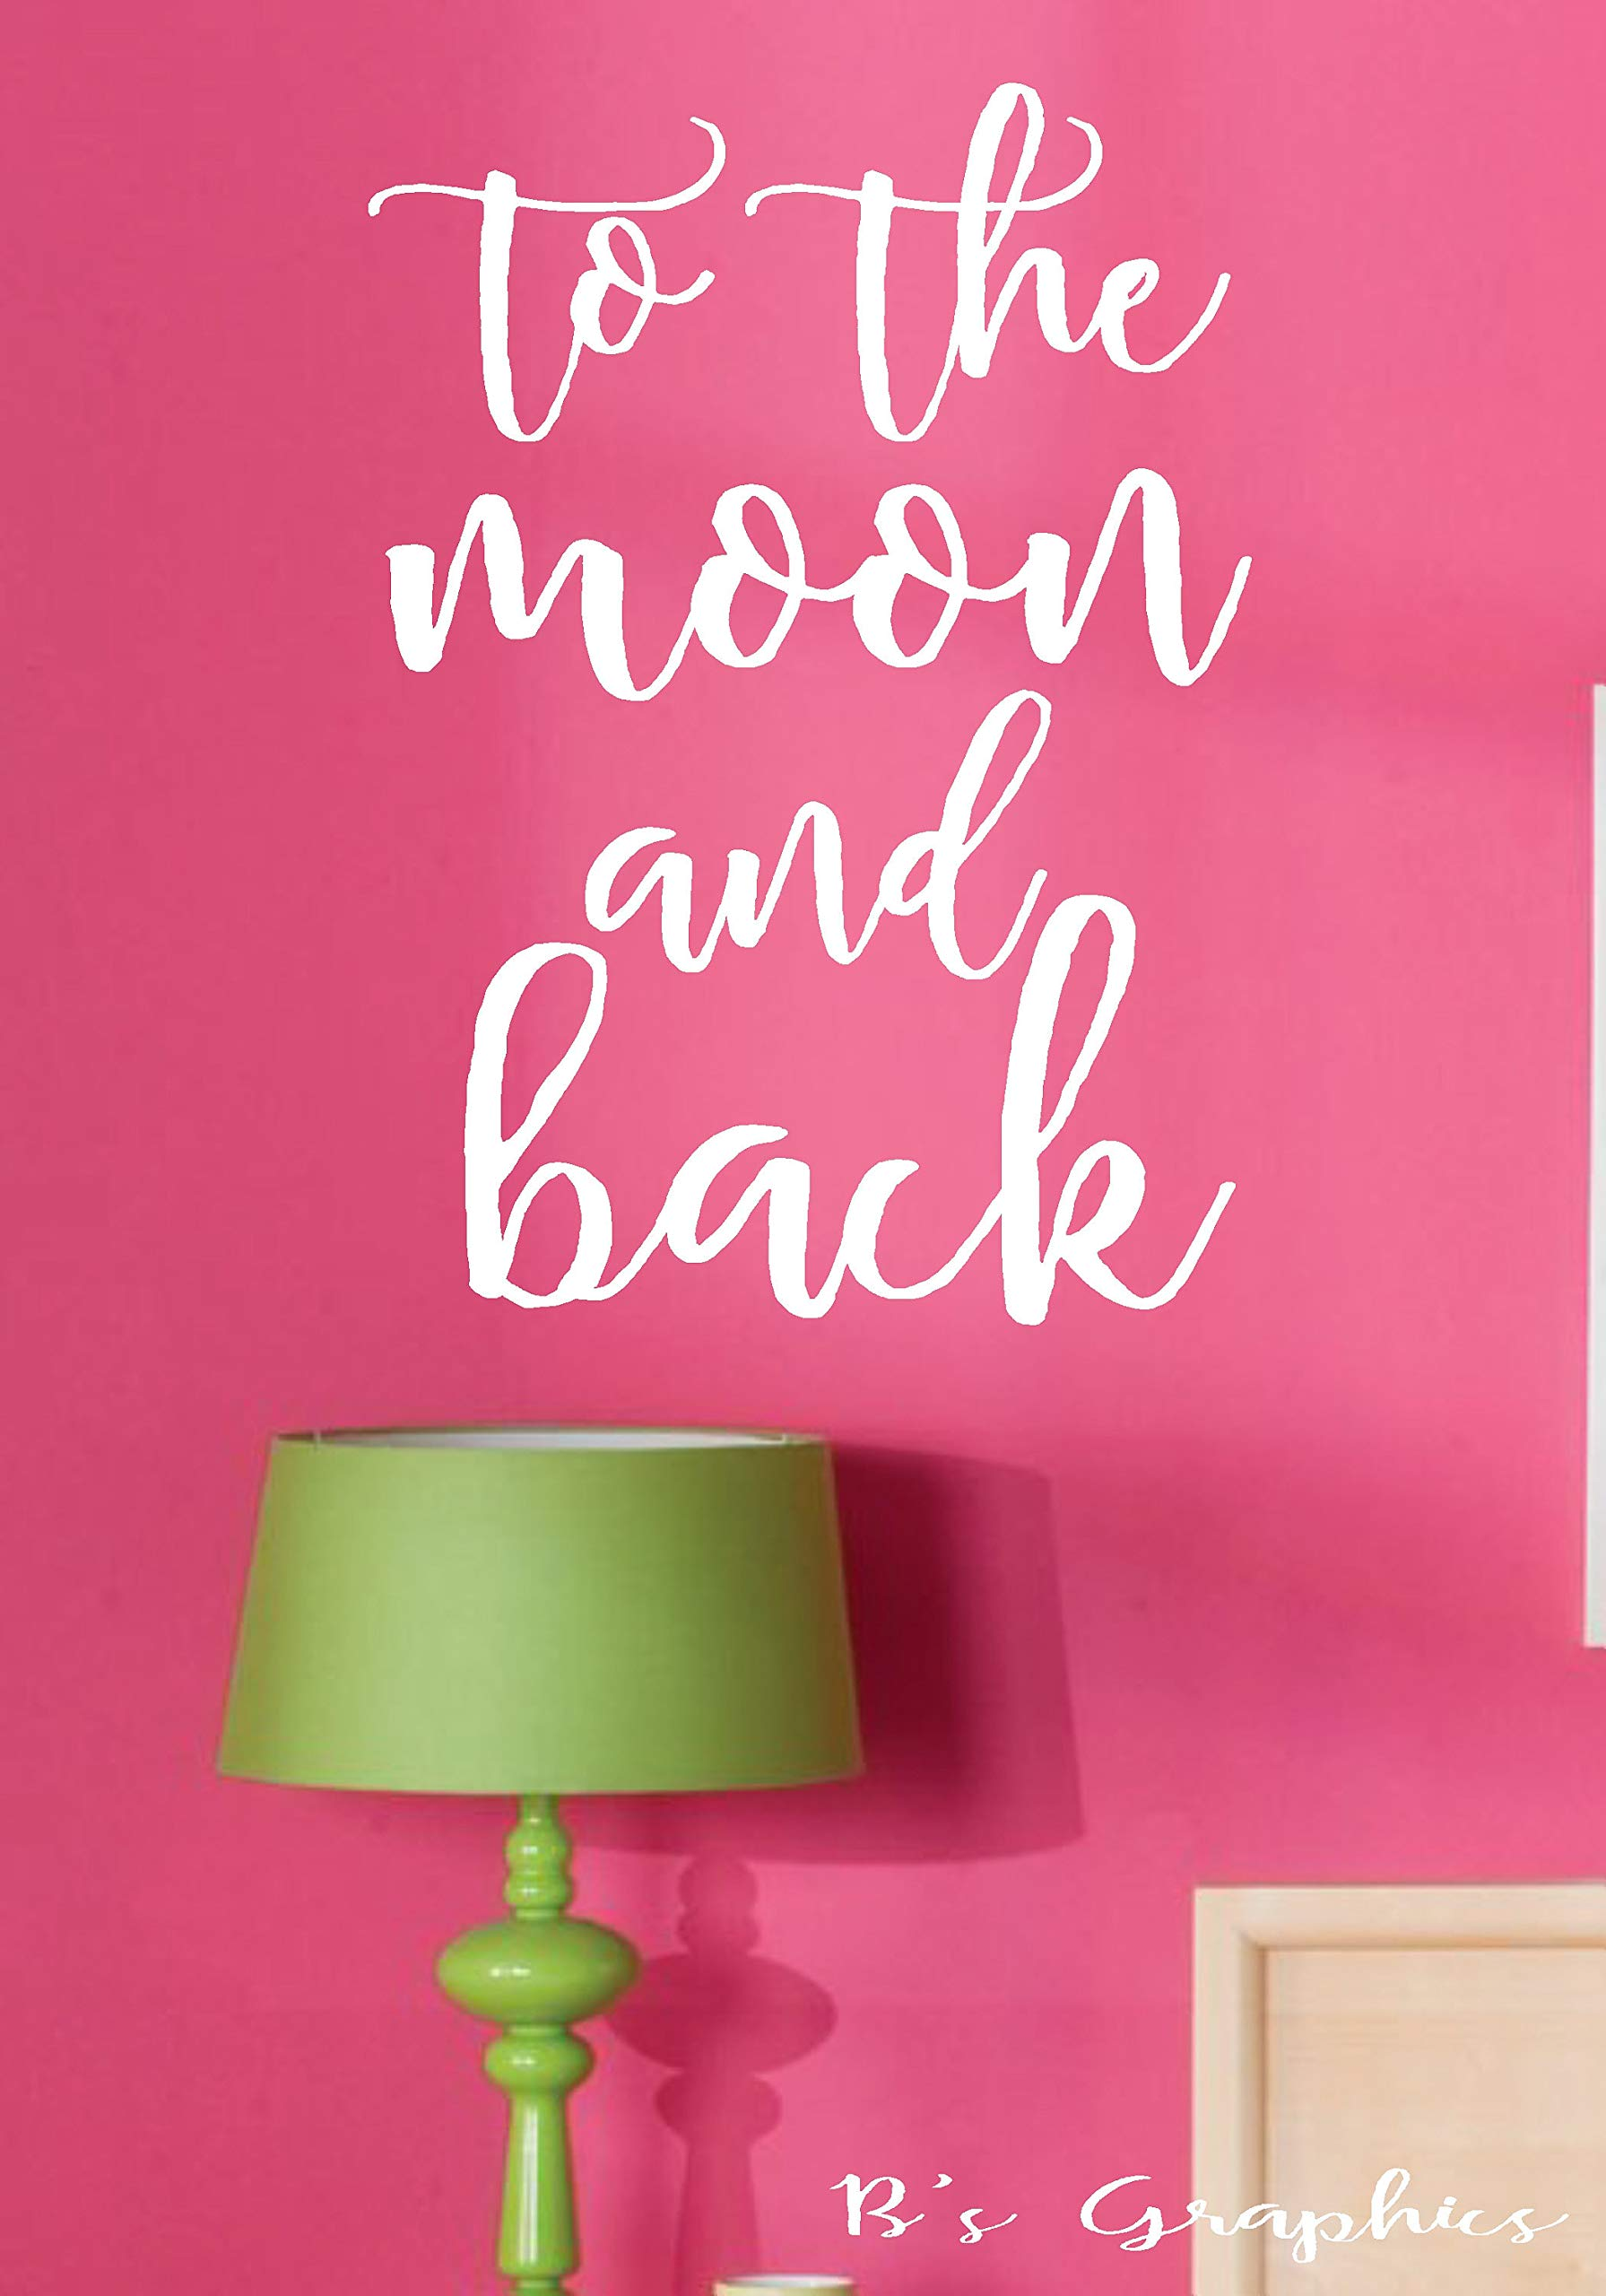 Moira to The Moon and backVinyl Wall DecalWall Quotes DecalsWords for The Wall French Country Decor Nursery Decor Farmhouse Decor